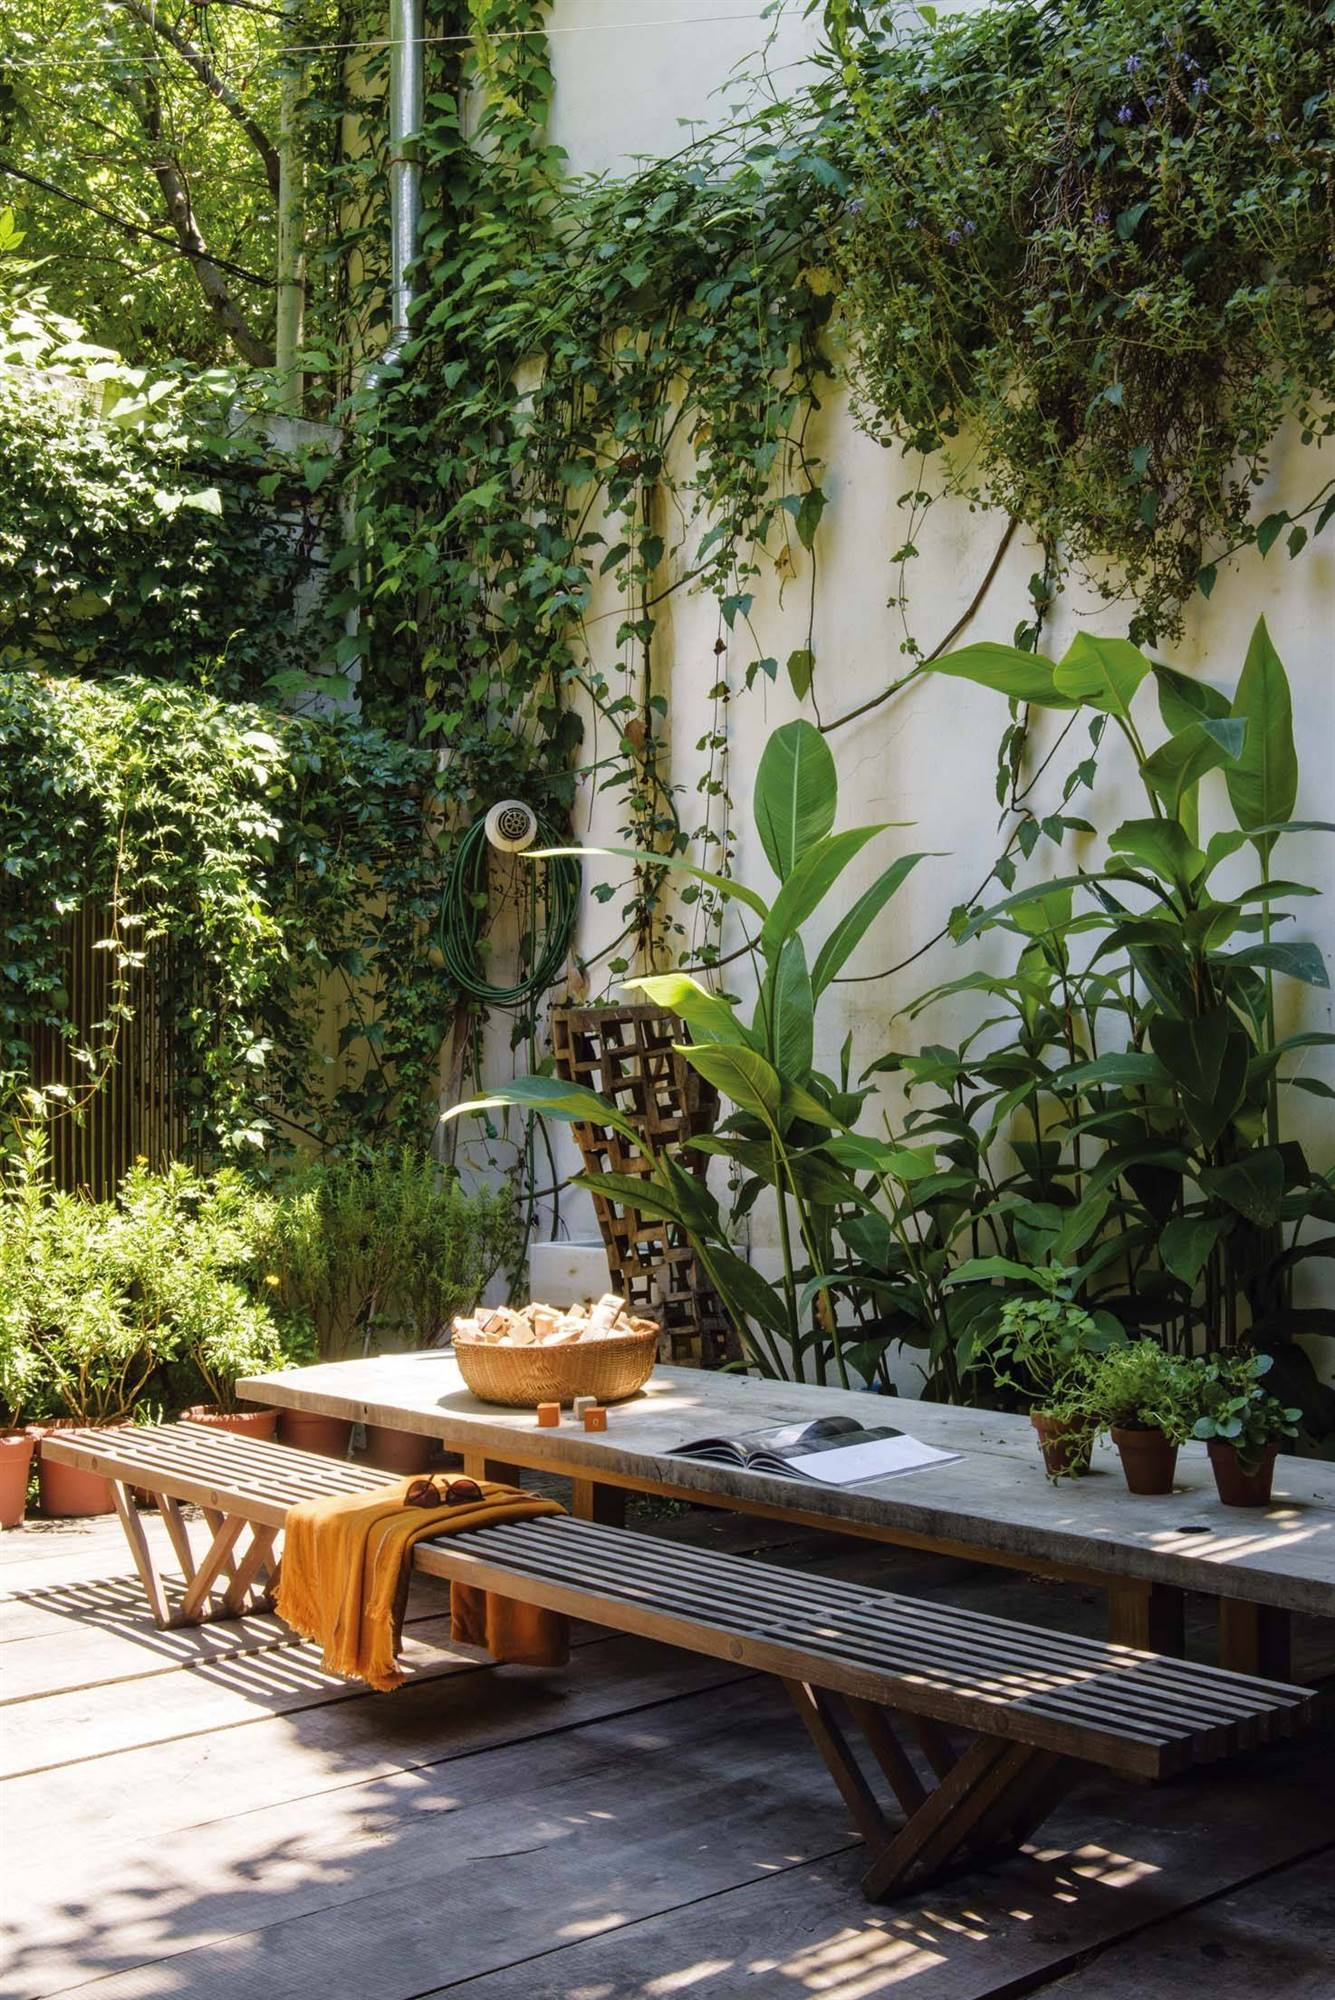 Patios de interior - lanacion. Un patio con intimidad